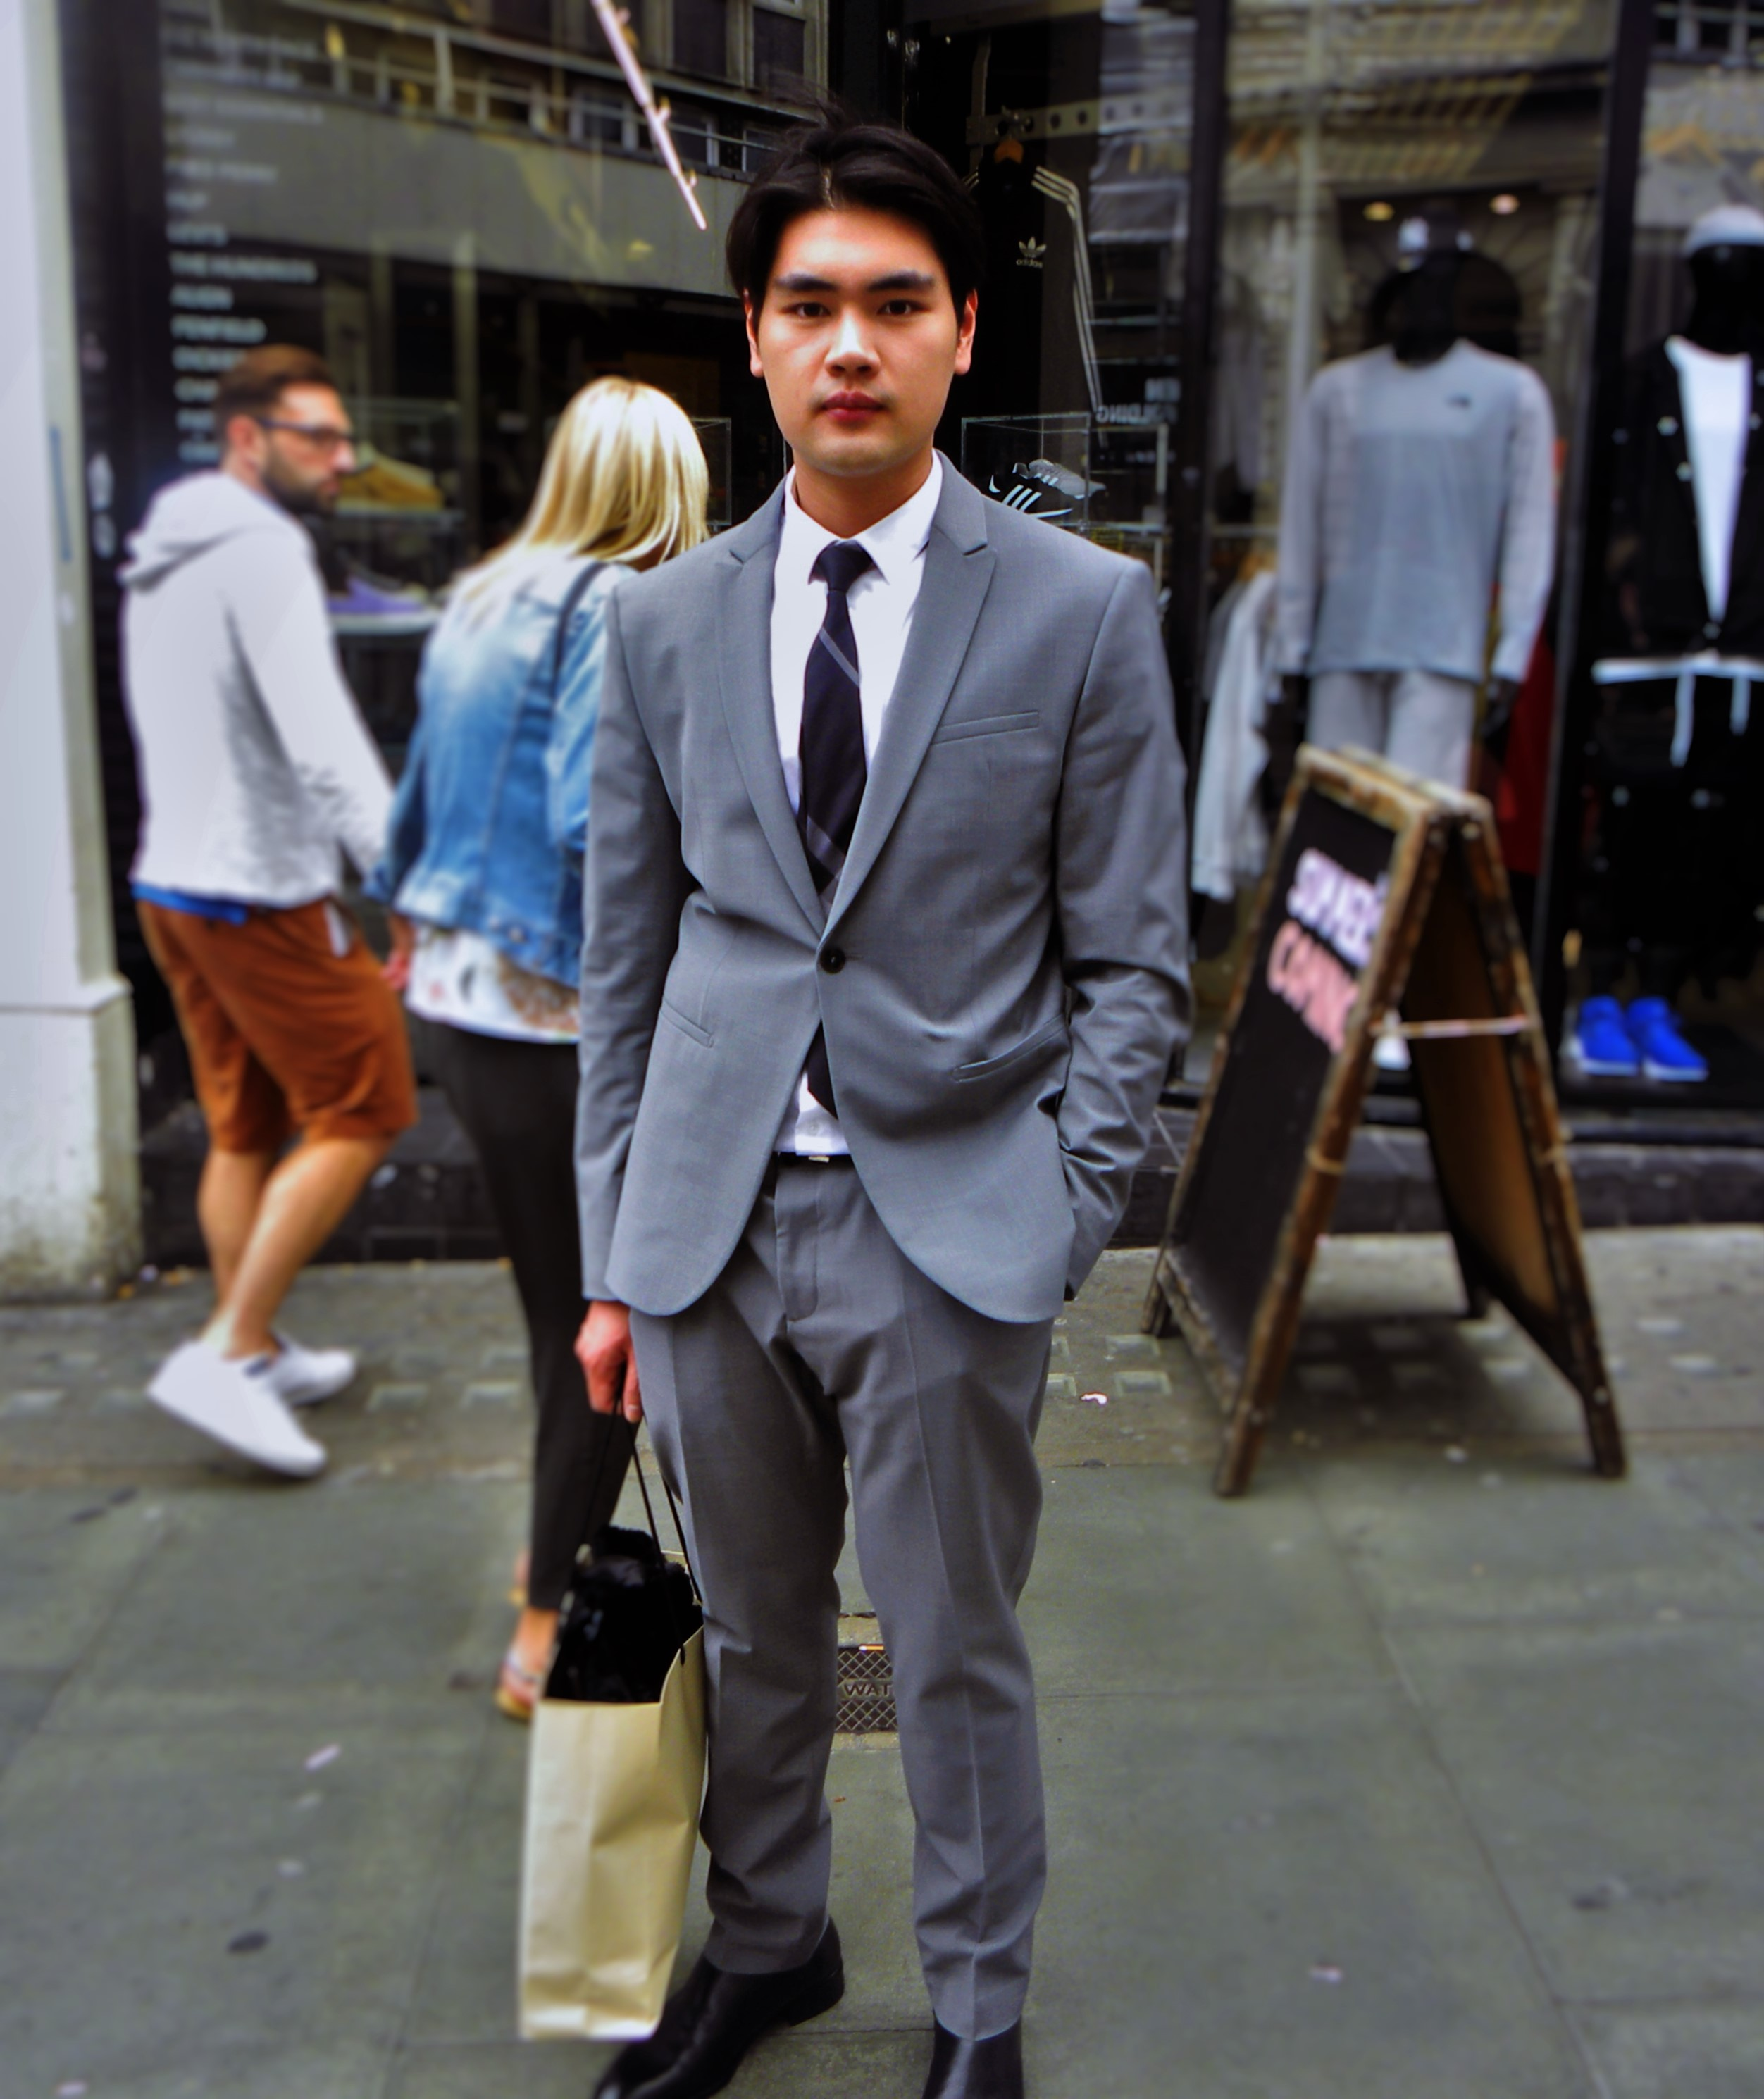 Jirat is wearing a suit and shoes from Zara and tie from Blue Beni.